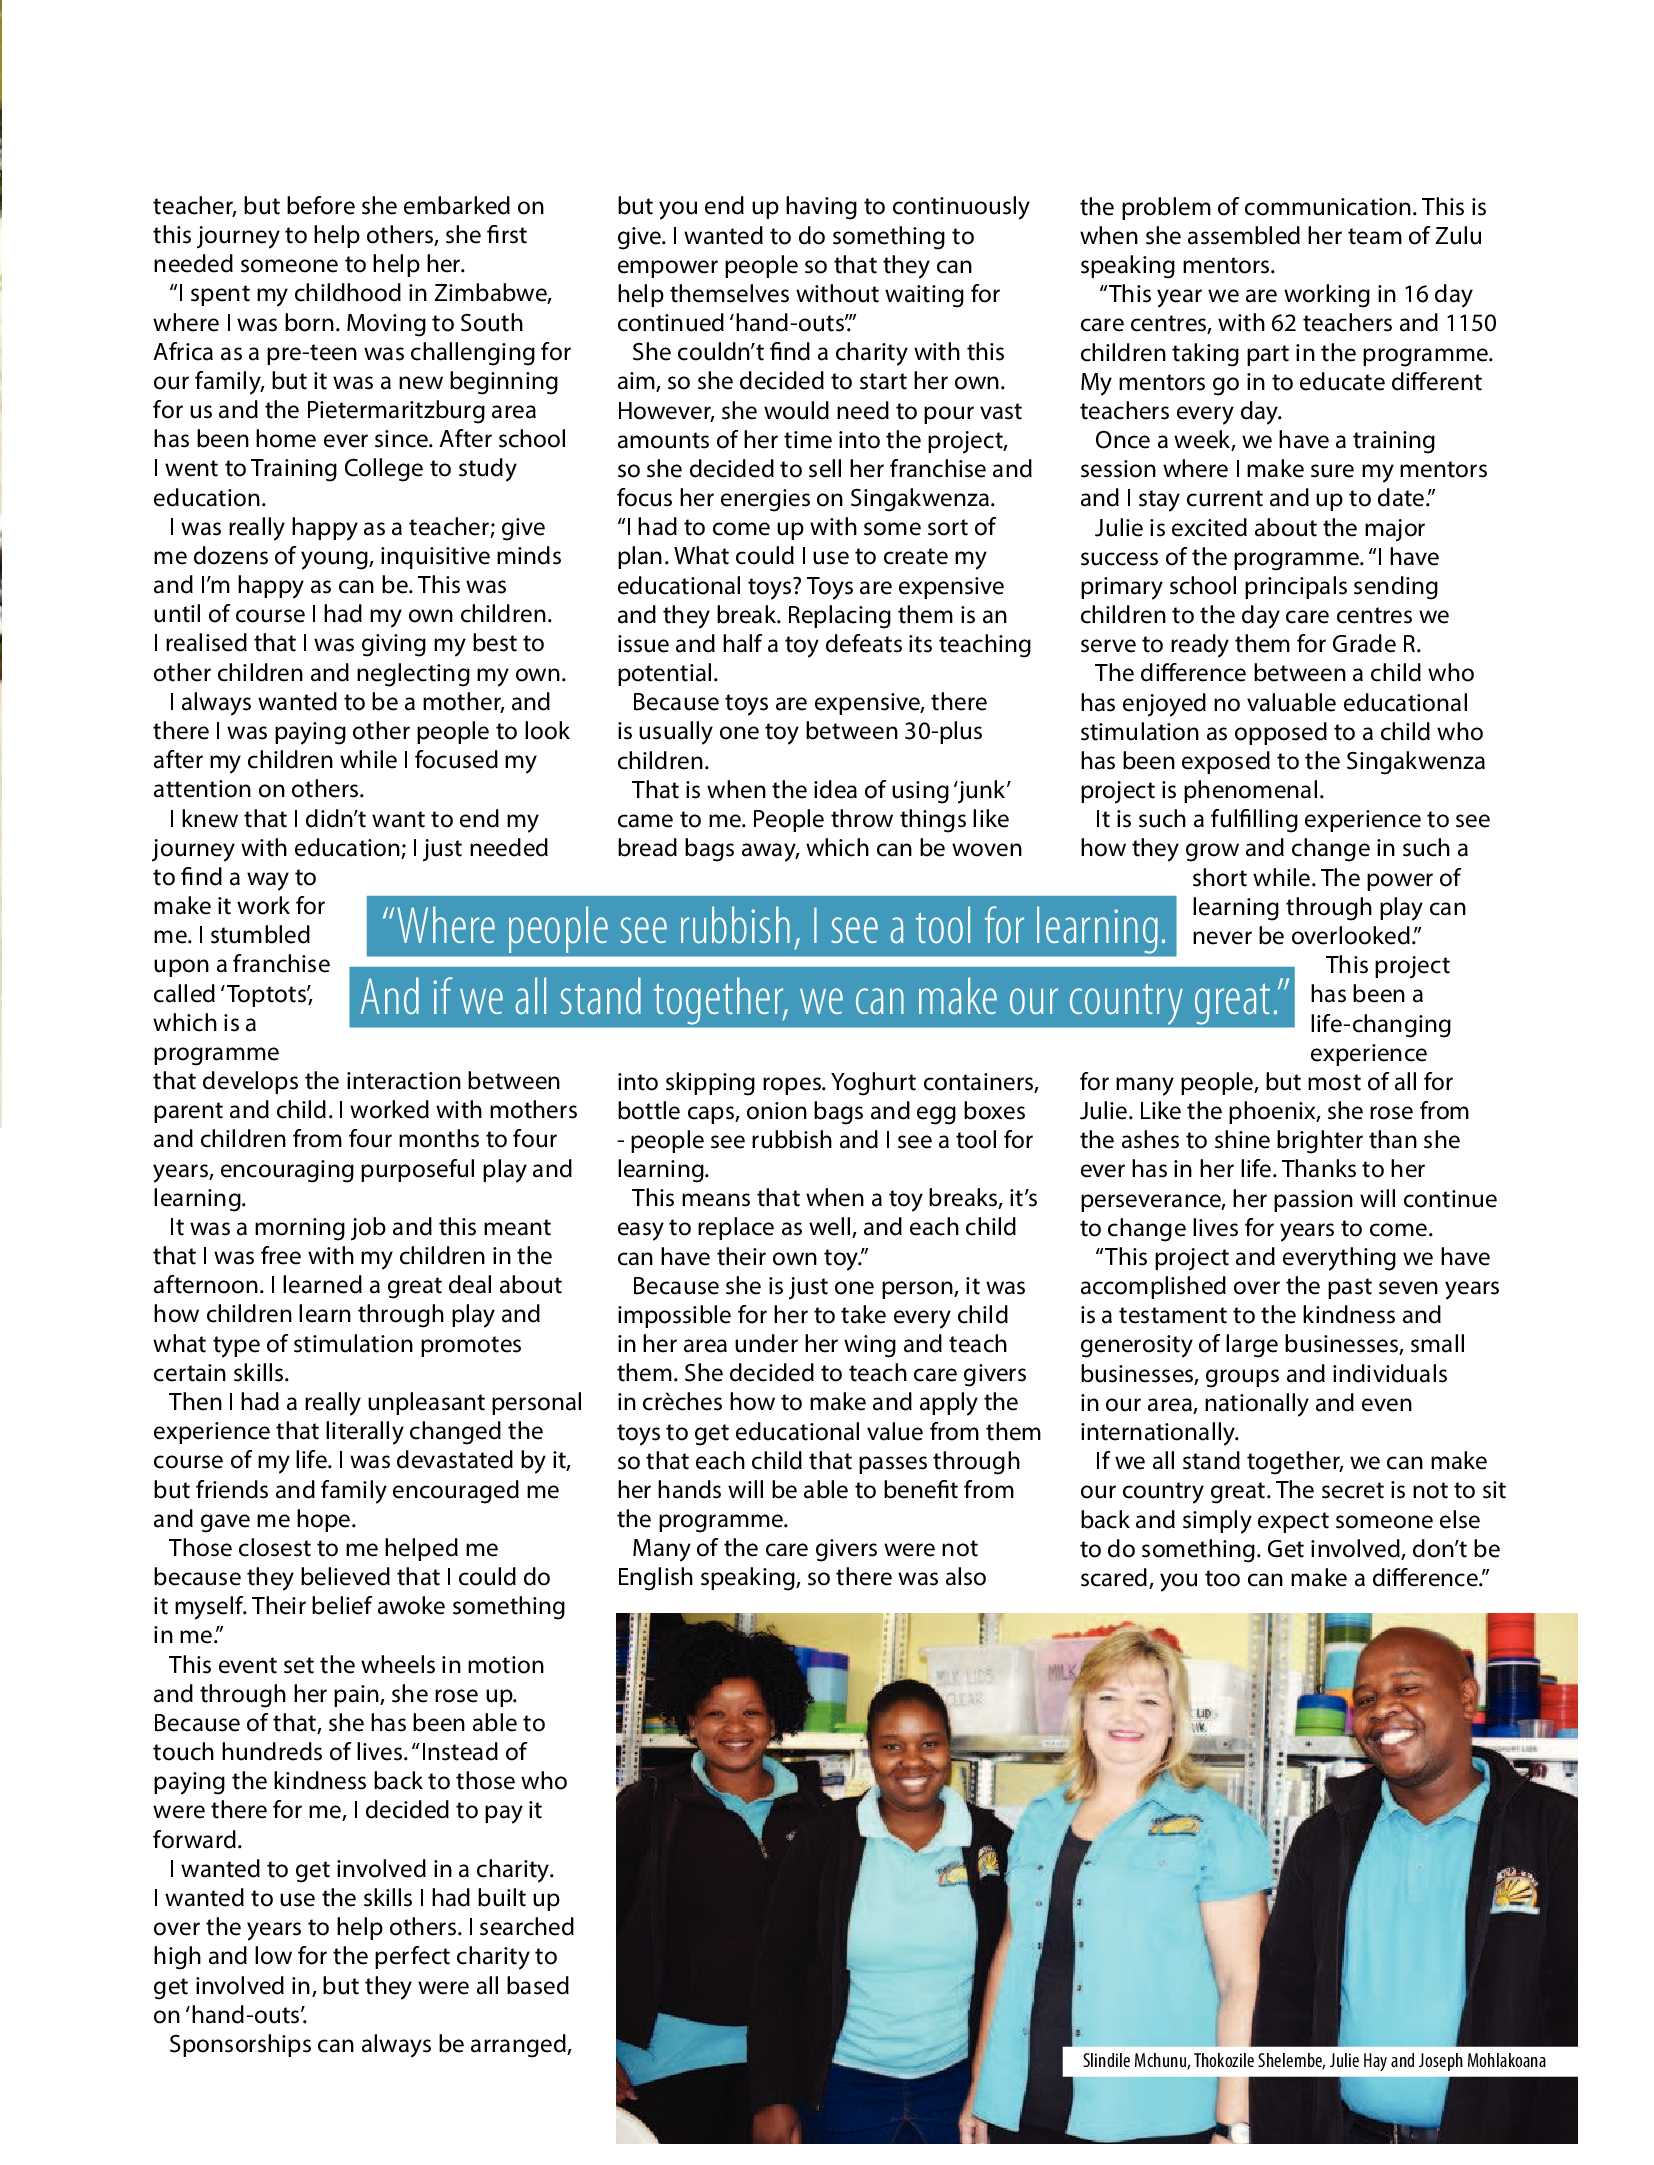 get-nothern-kzn-midlands-february-2018-epapers-page-21